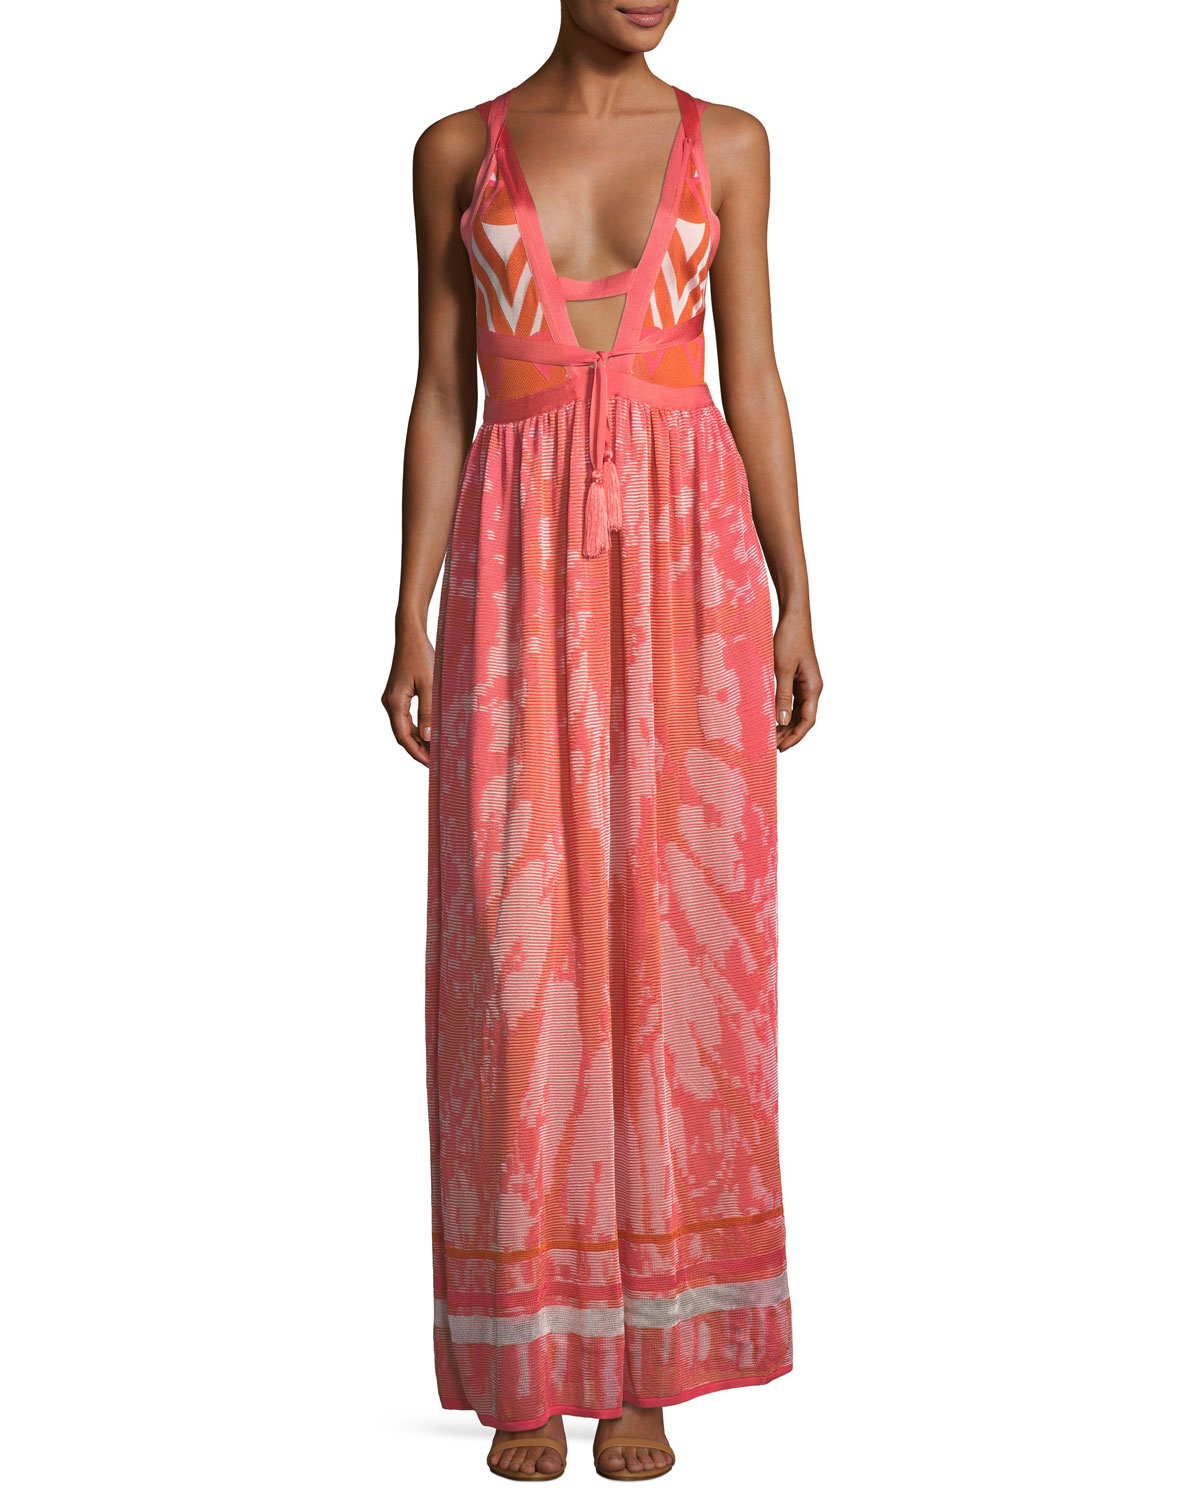 d86a7e3e5a4 Talitha Collection Plunging Tie-Dye Camisole Maxi Dress